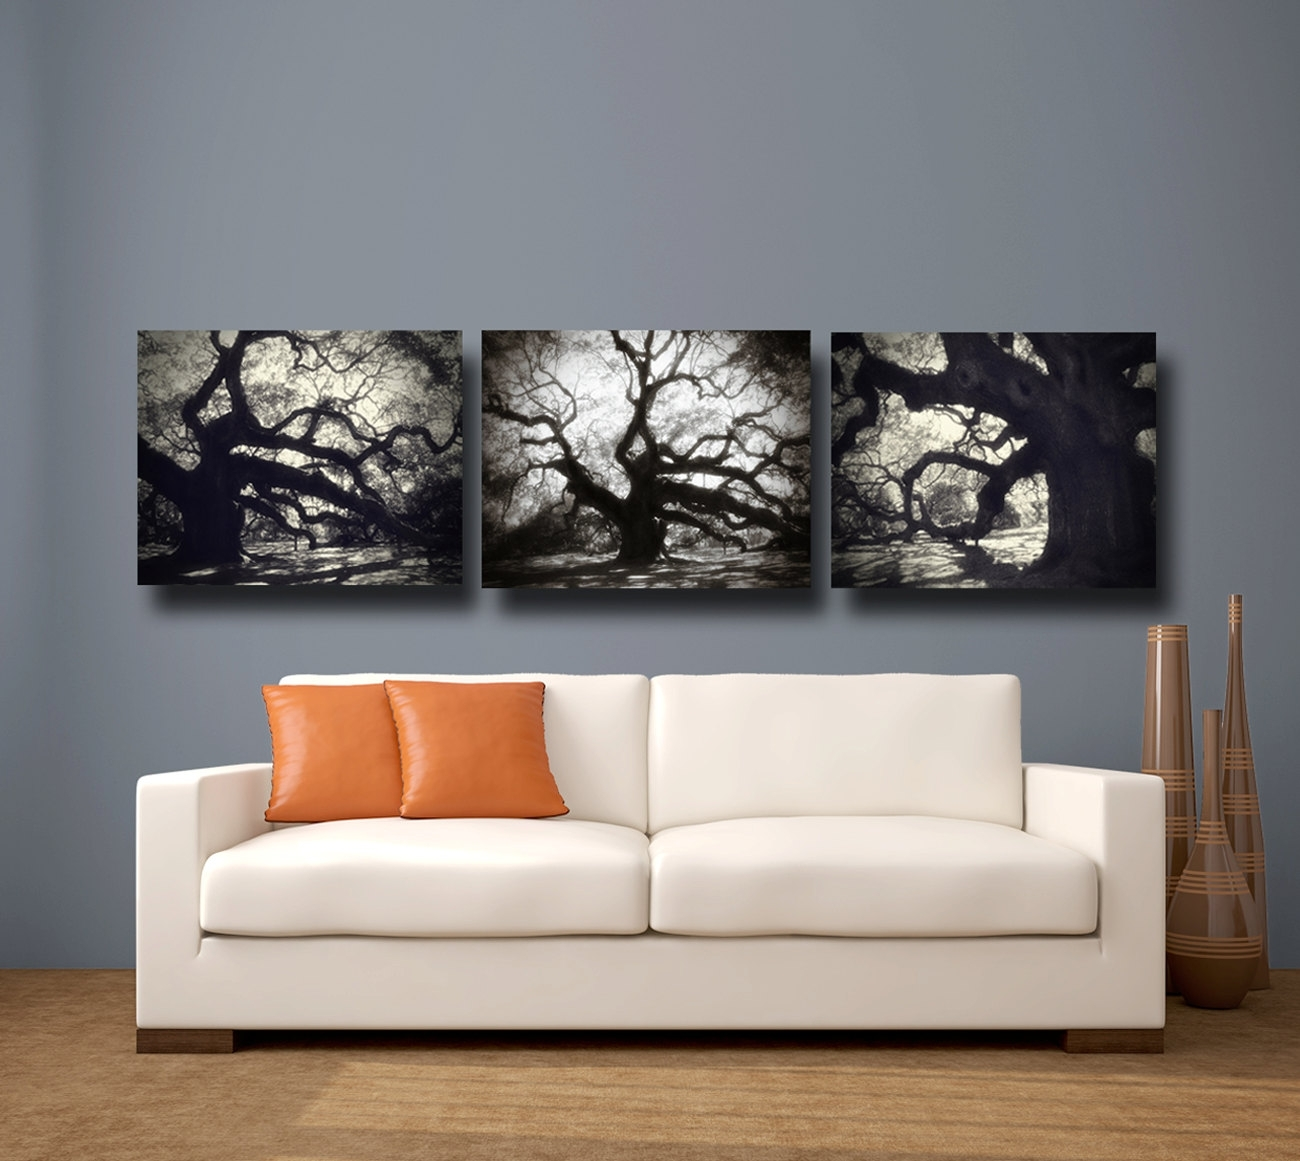 Wall Art Designs: Black And White Canvas Wall Art Astounding With Regard To 2018 Black And White Canvas Wall Art (View 11 of 15)